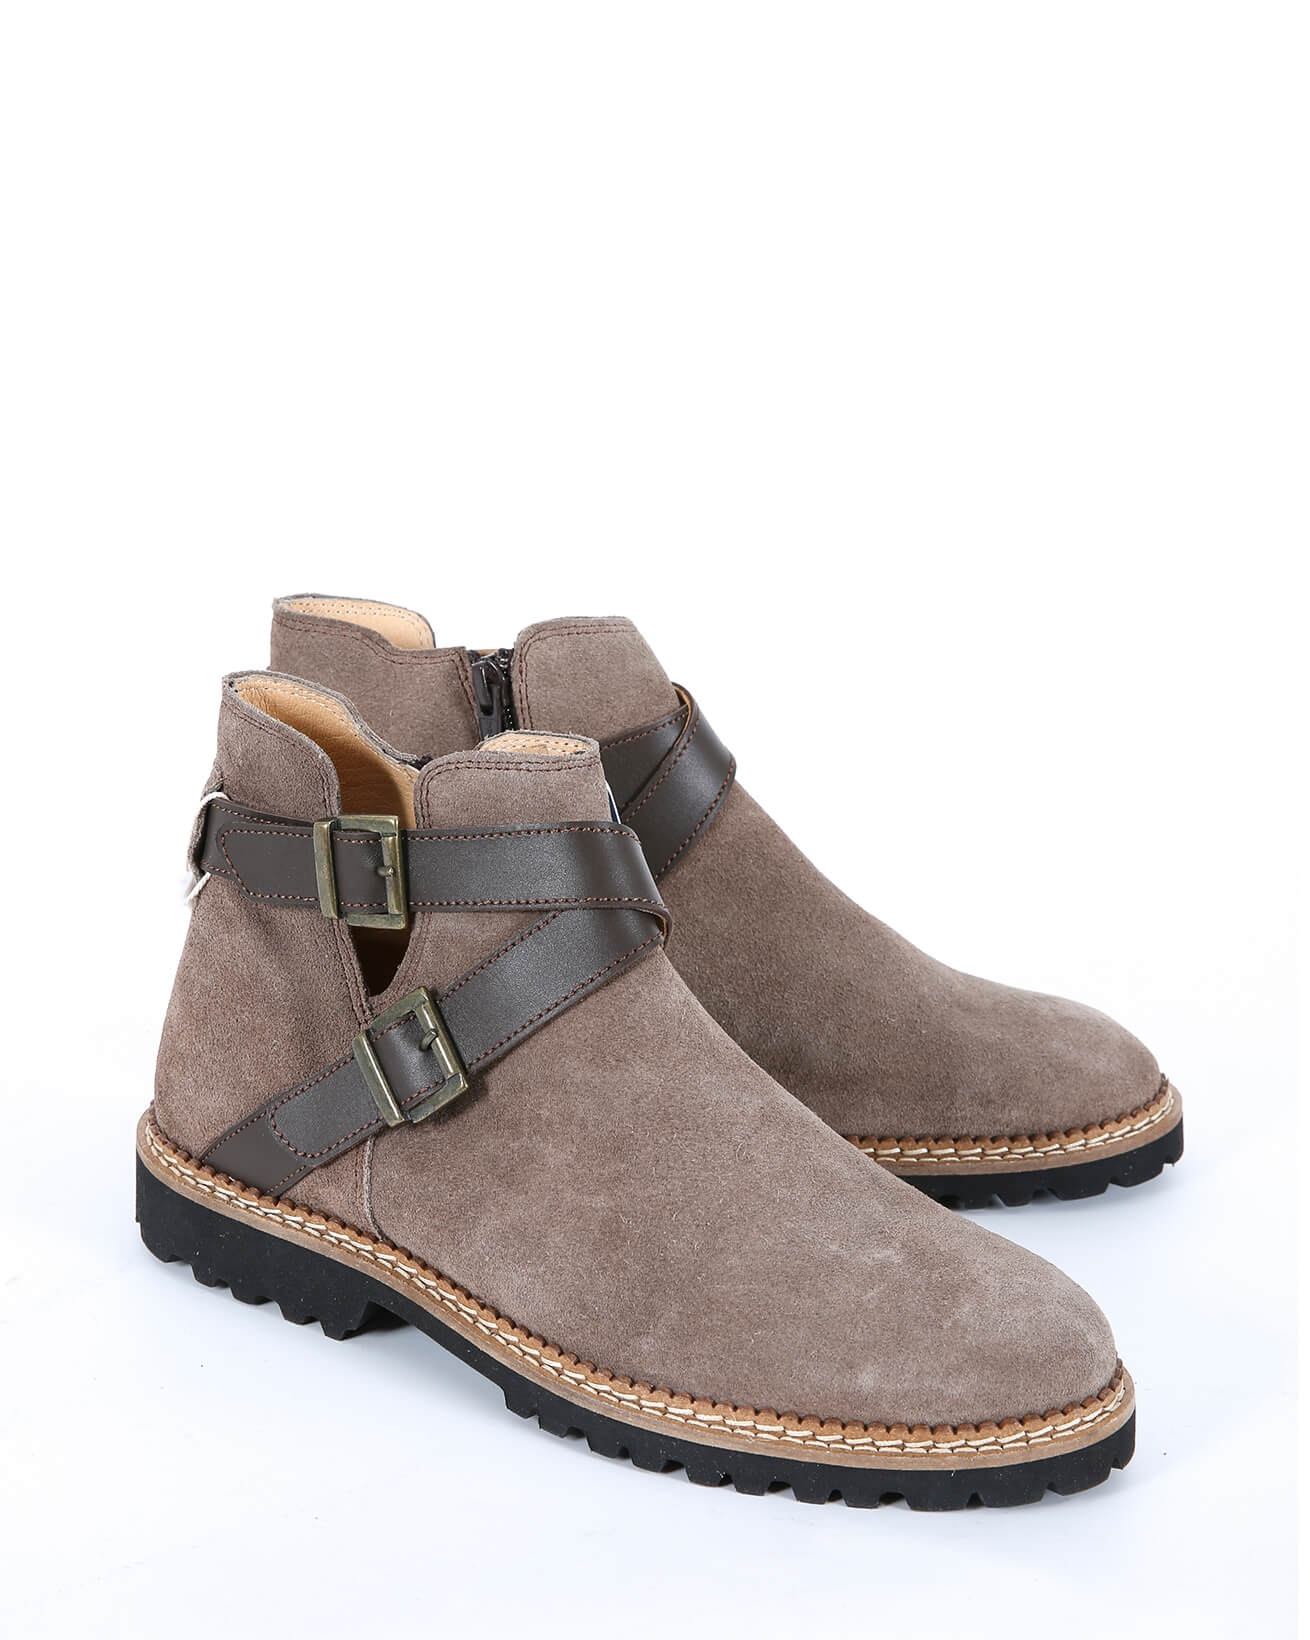 Buckle Strap Ankle Boot - Size 5 - Taupe - 504